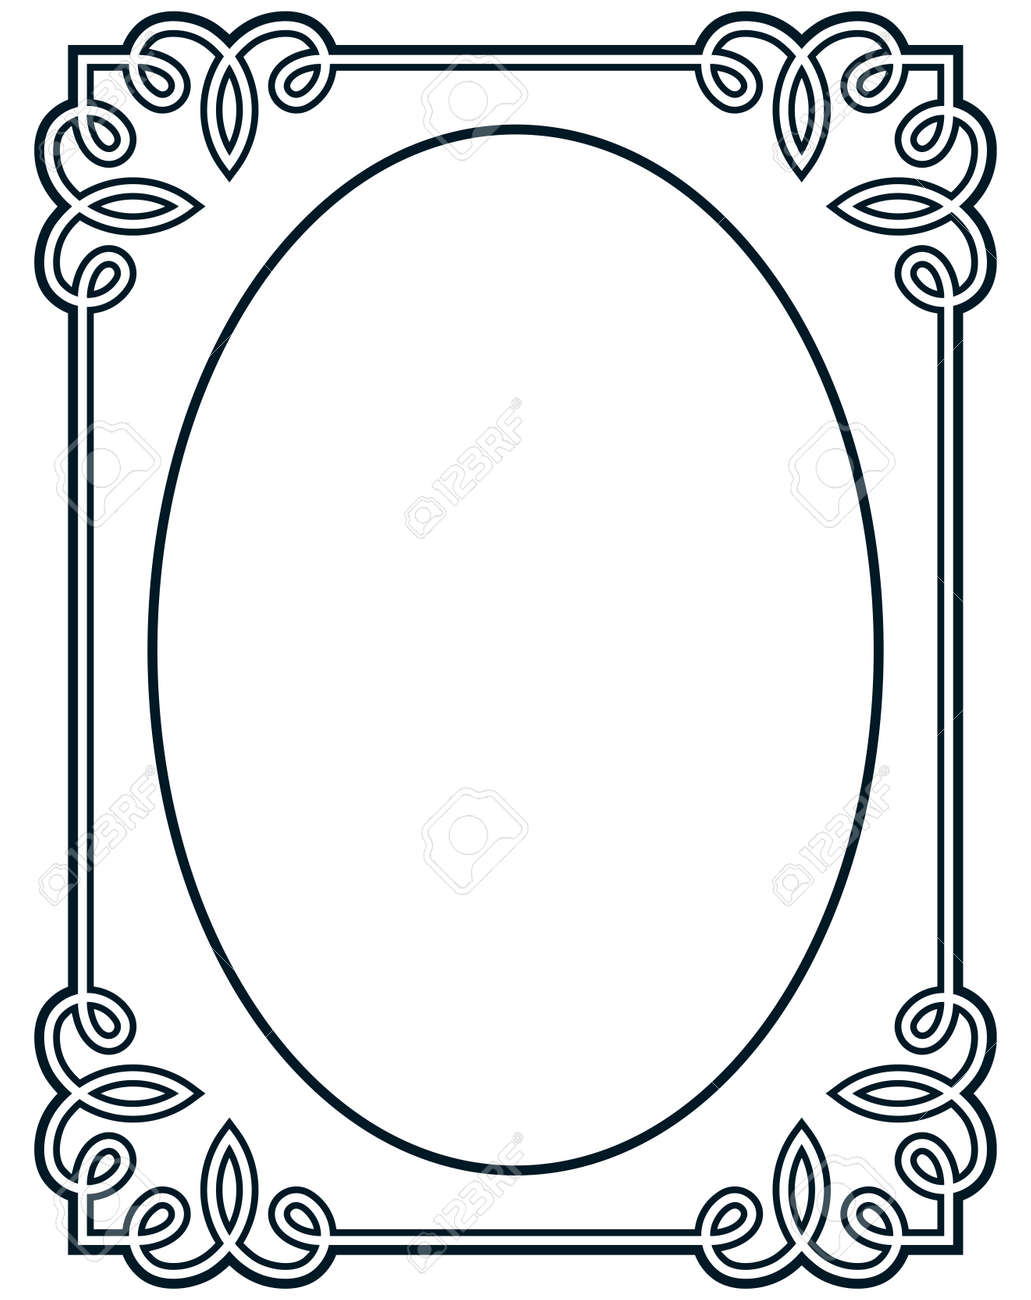 Oval Border Photo Frame Deco Vector Simple Vertical Line Signboard Stock